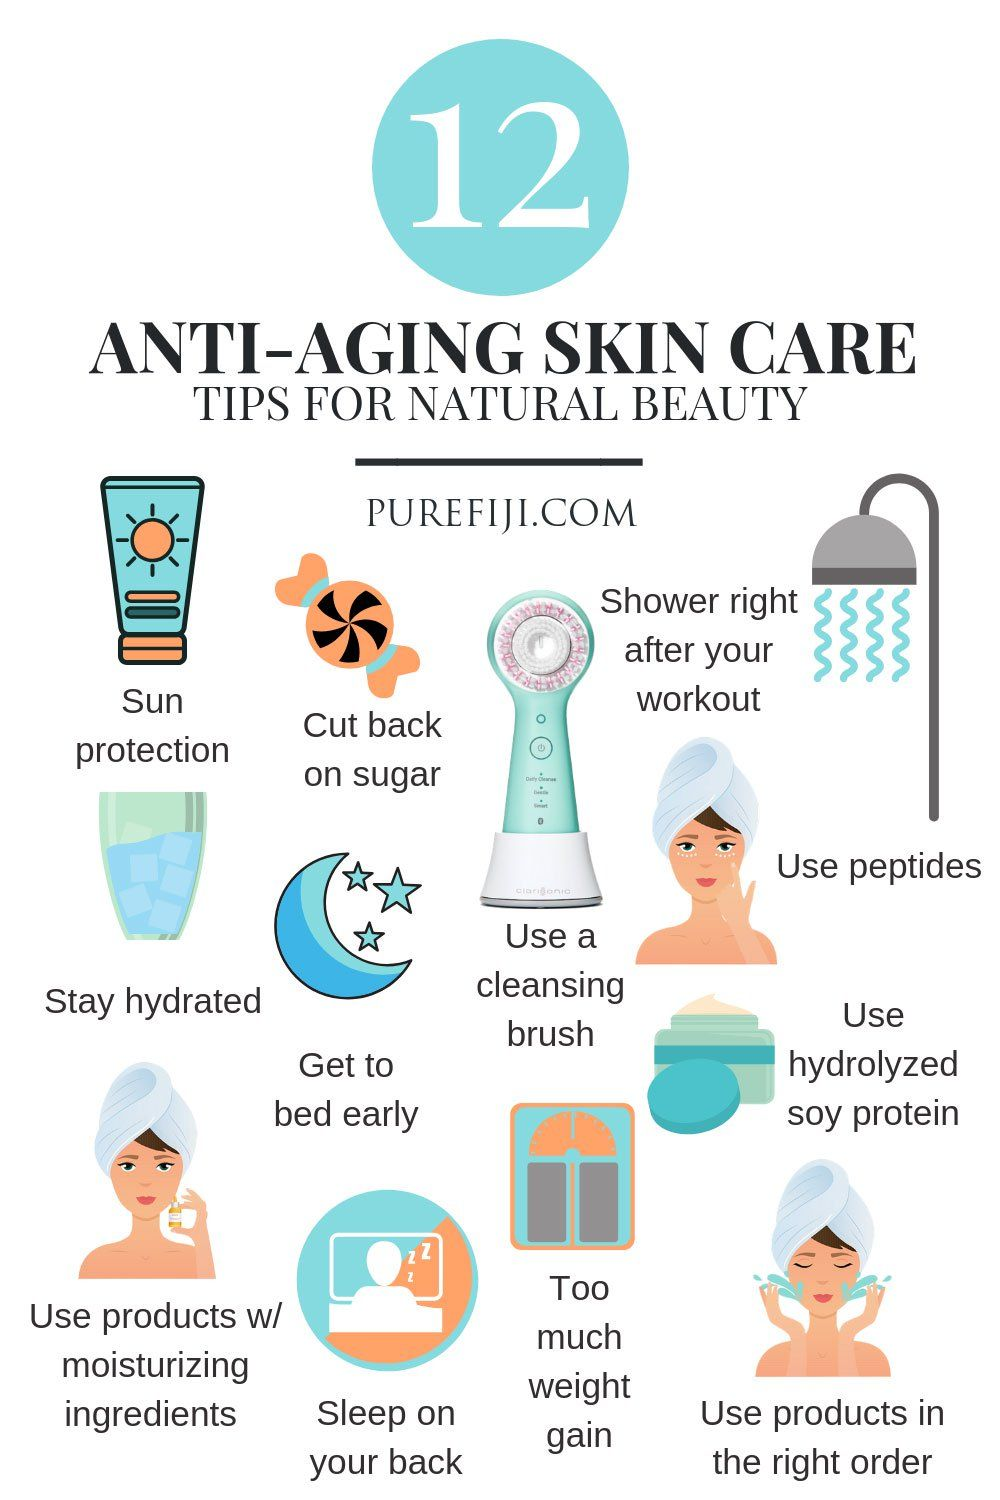 9 Anti-Aging Skin Care Tips That Promote Natural Looking Beauty